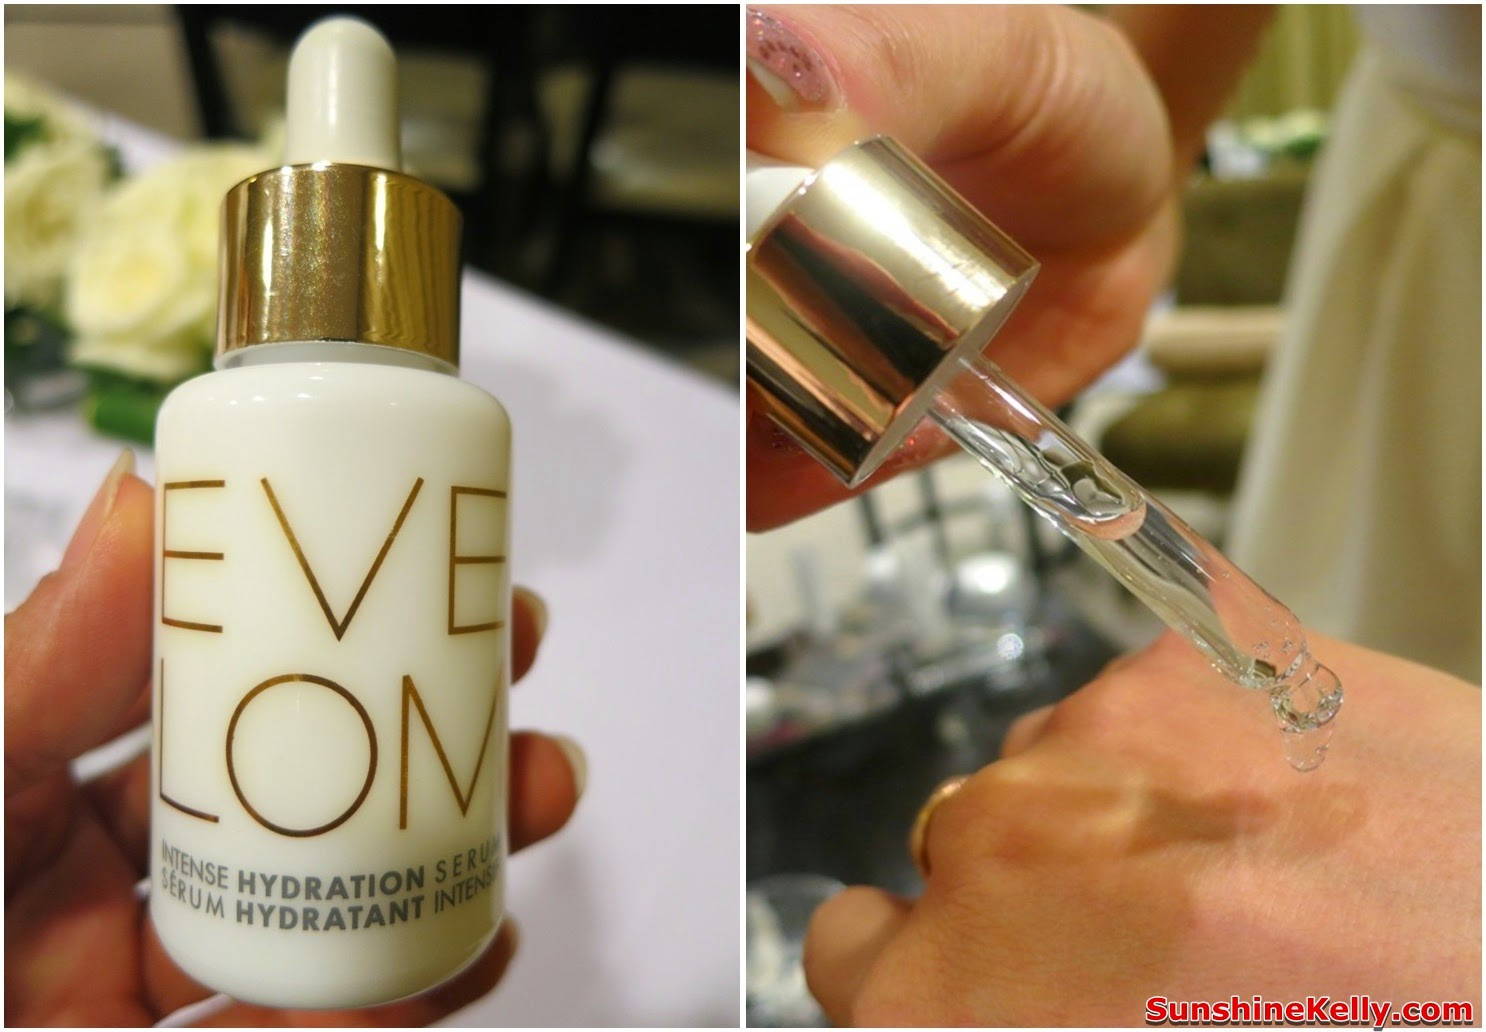 eve lom firming serum review